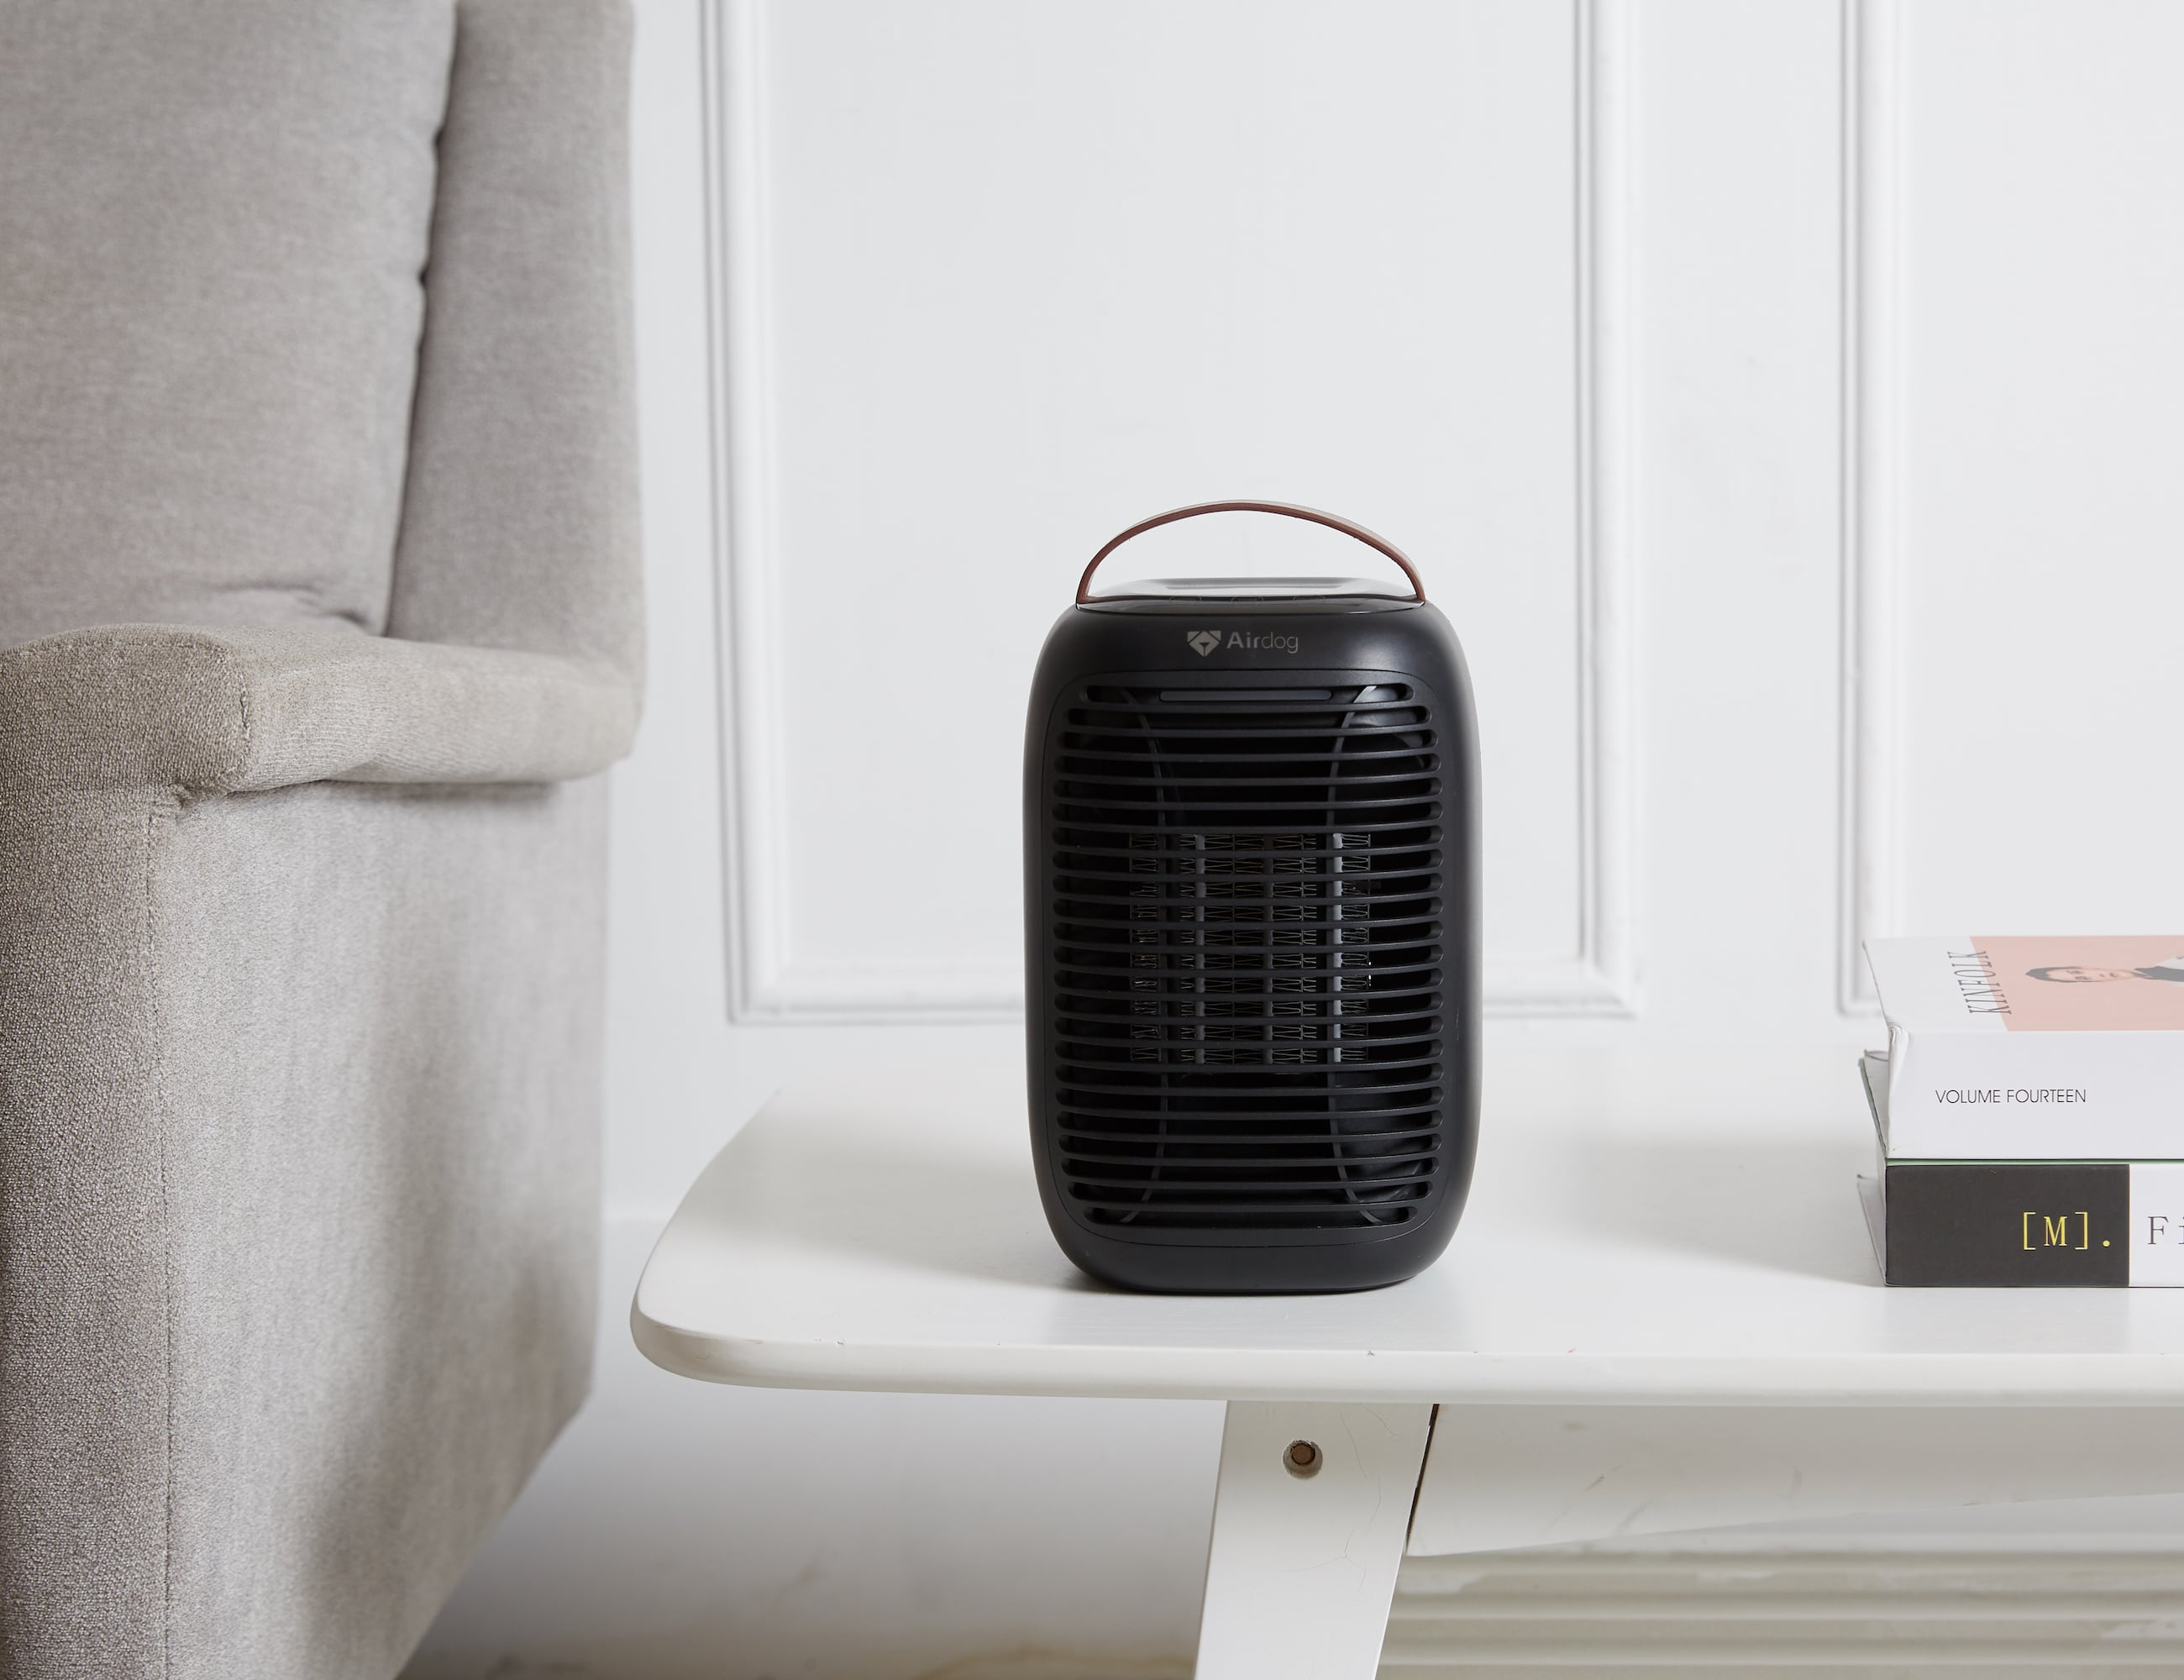 Airdog Portable Dual Comfort Fan Heater